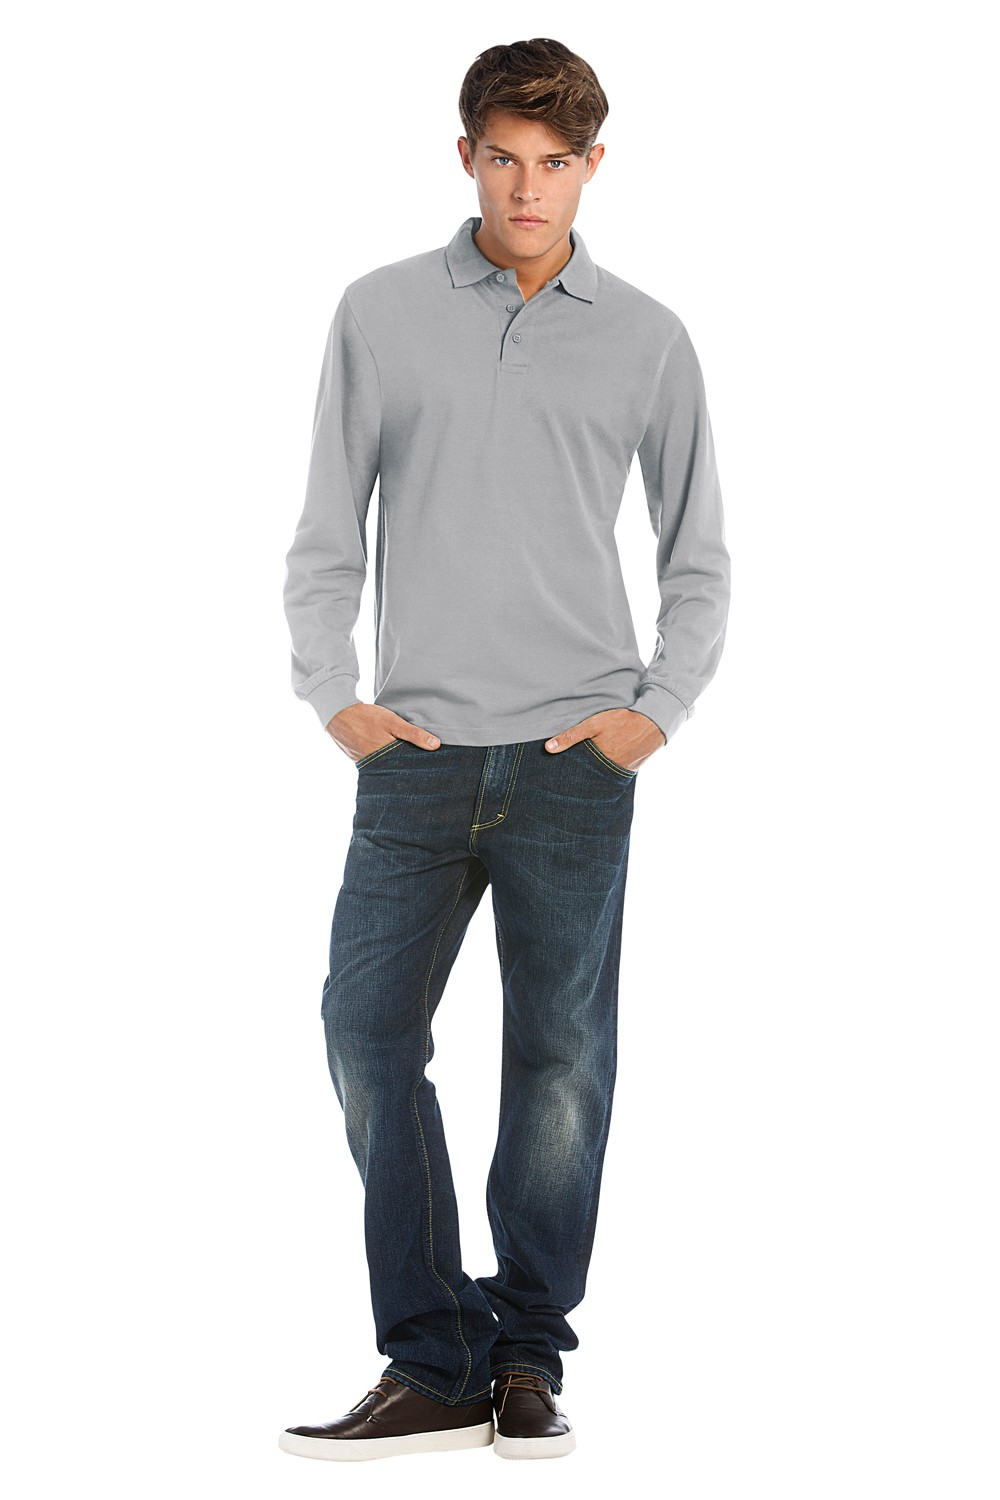 Heavymill Long Sleeve Polo Shirt